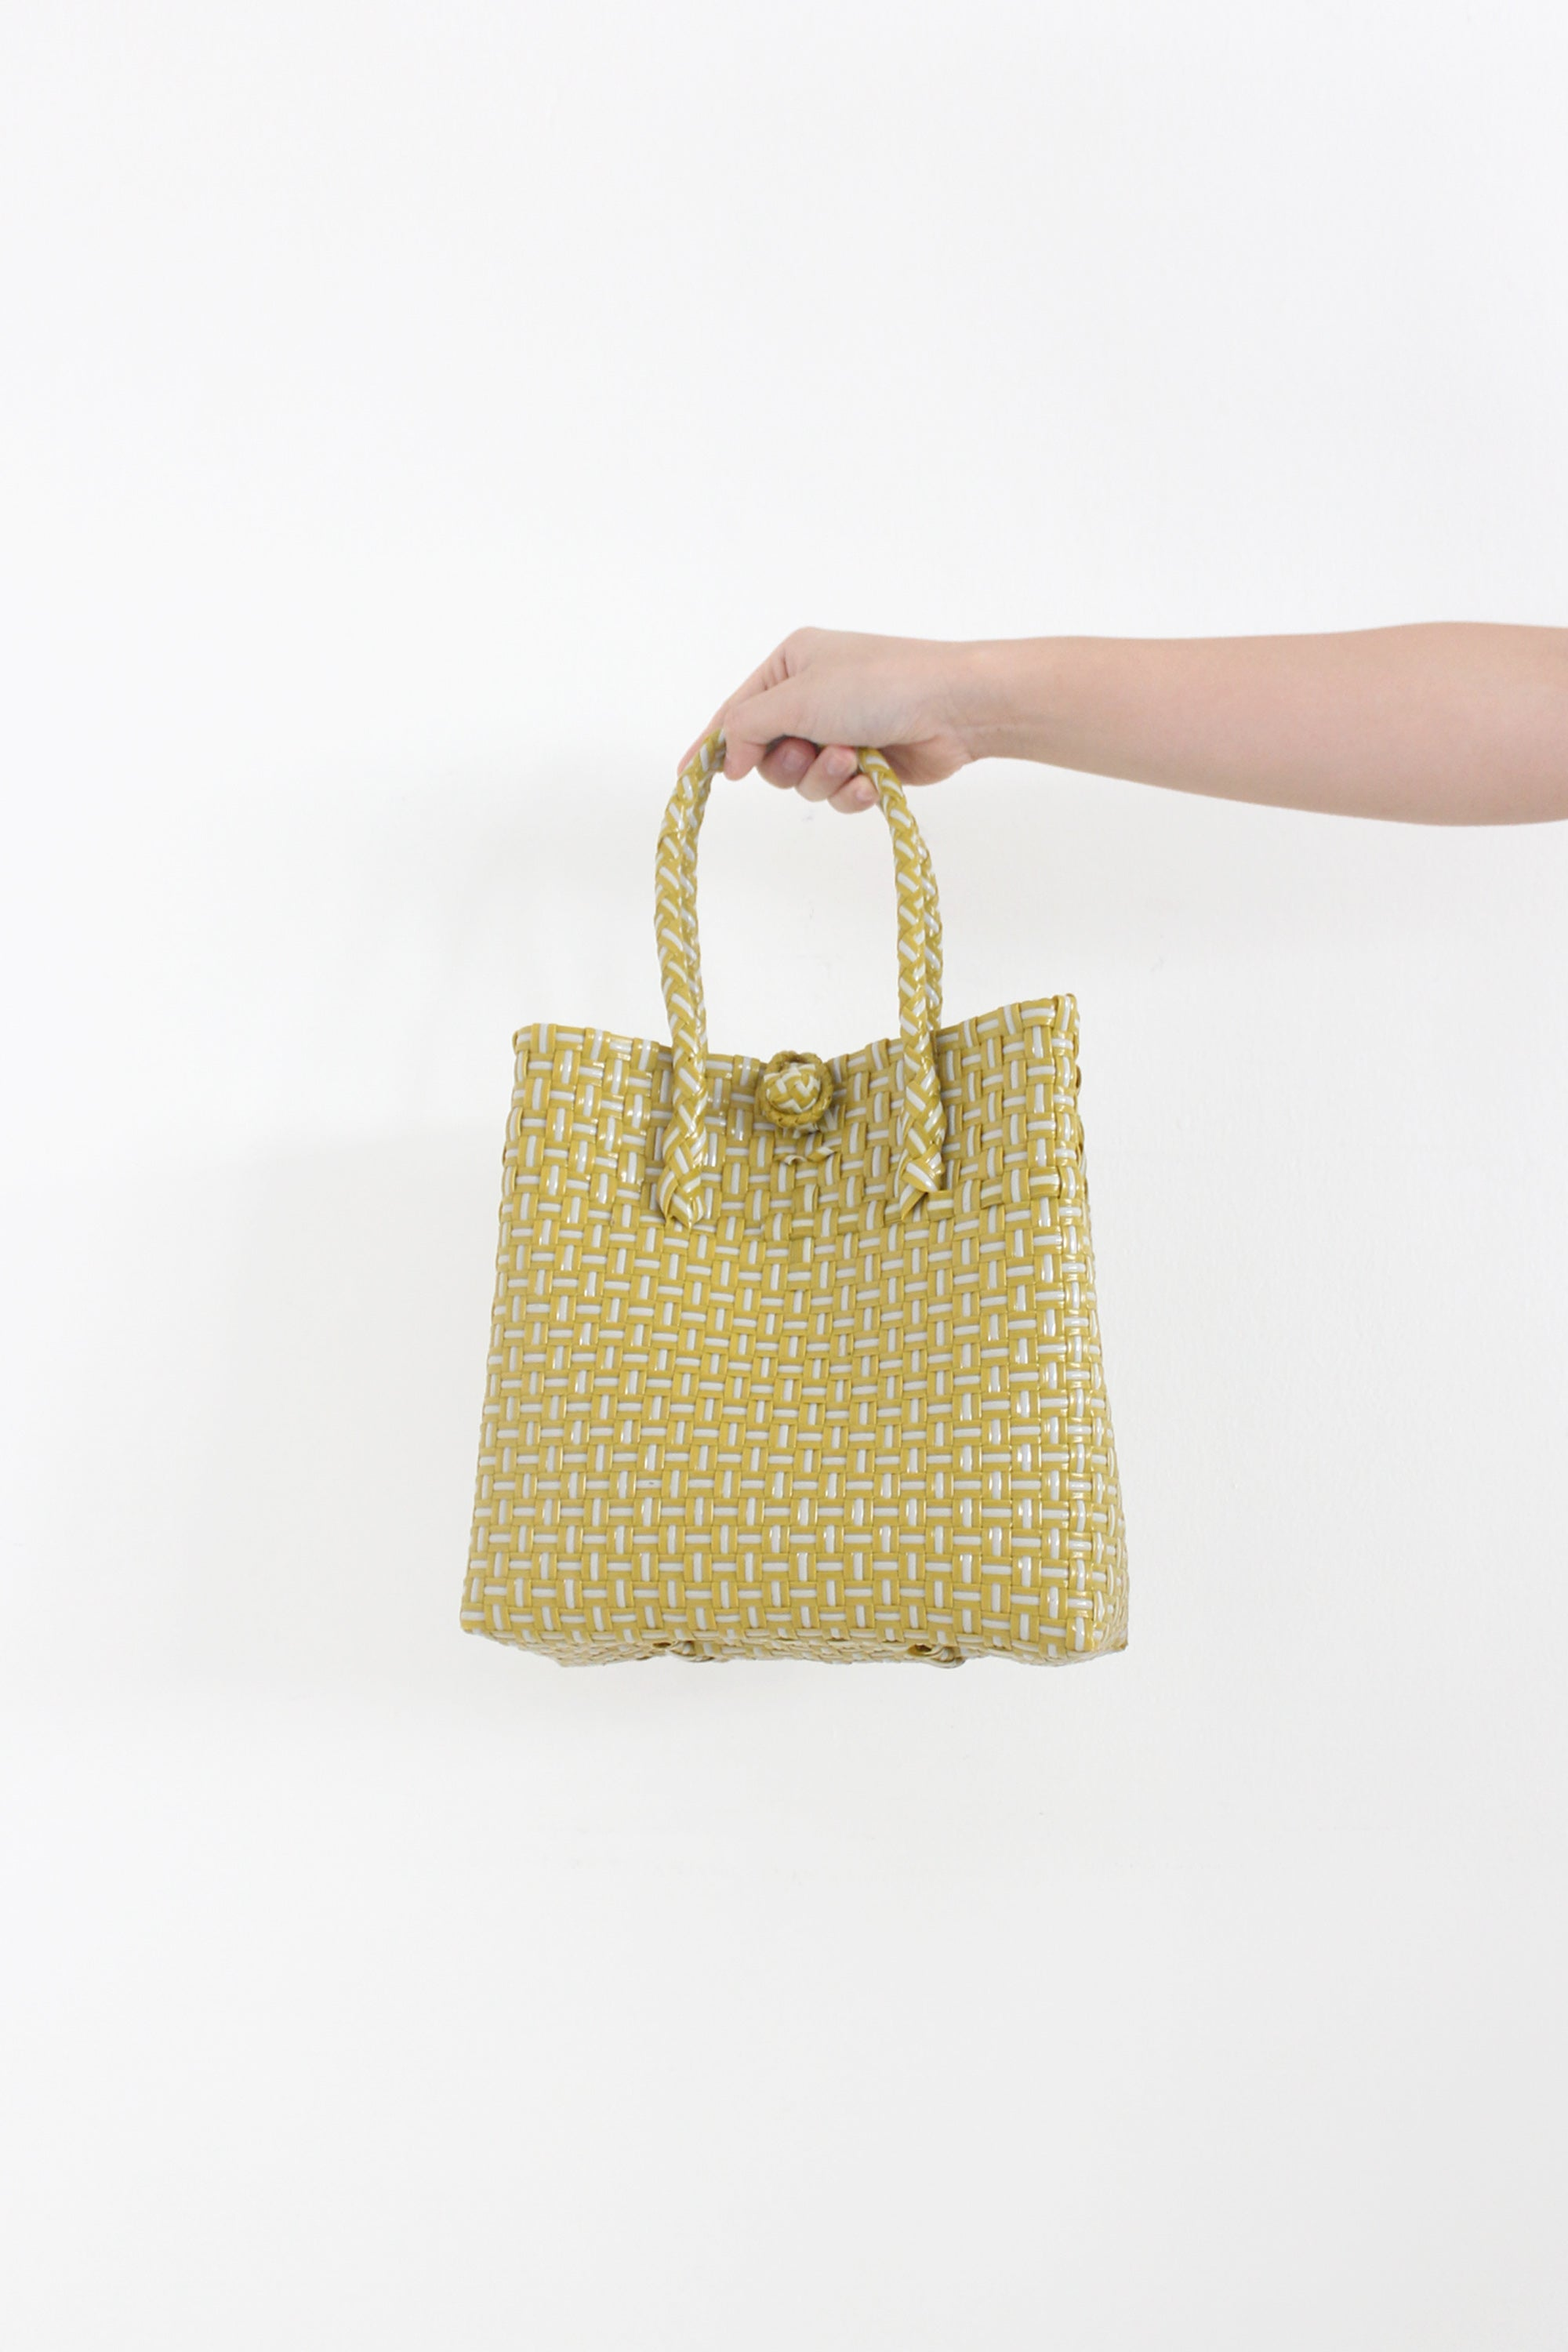 Mini Philo Bag in Mustard